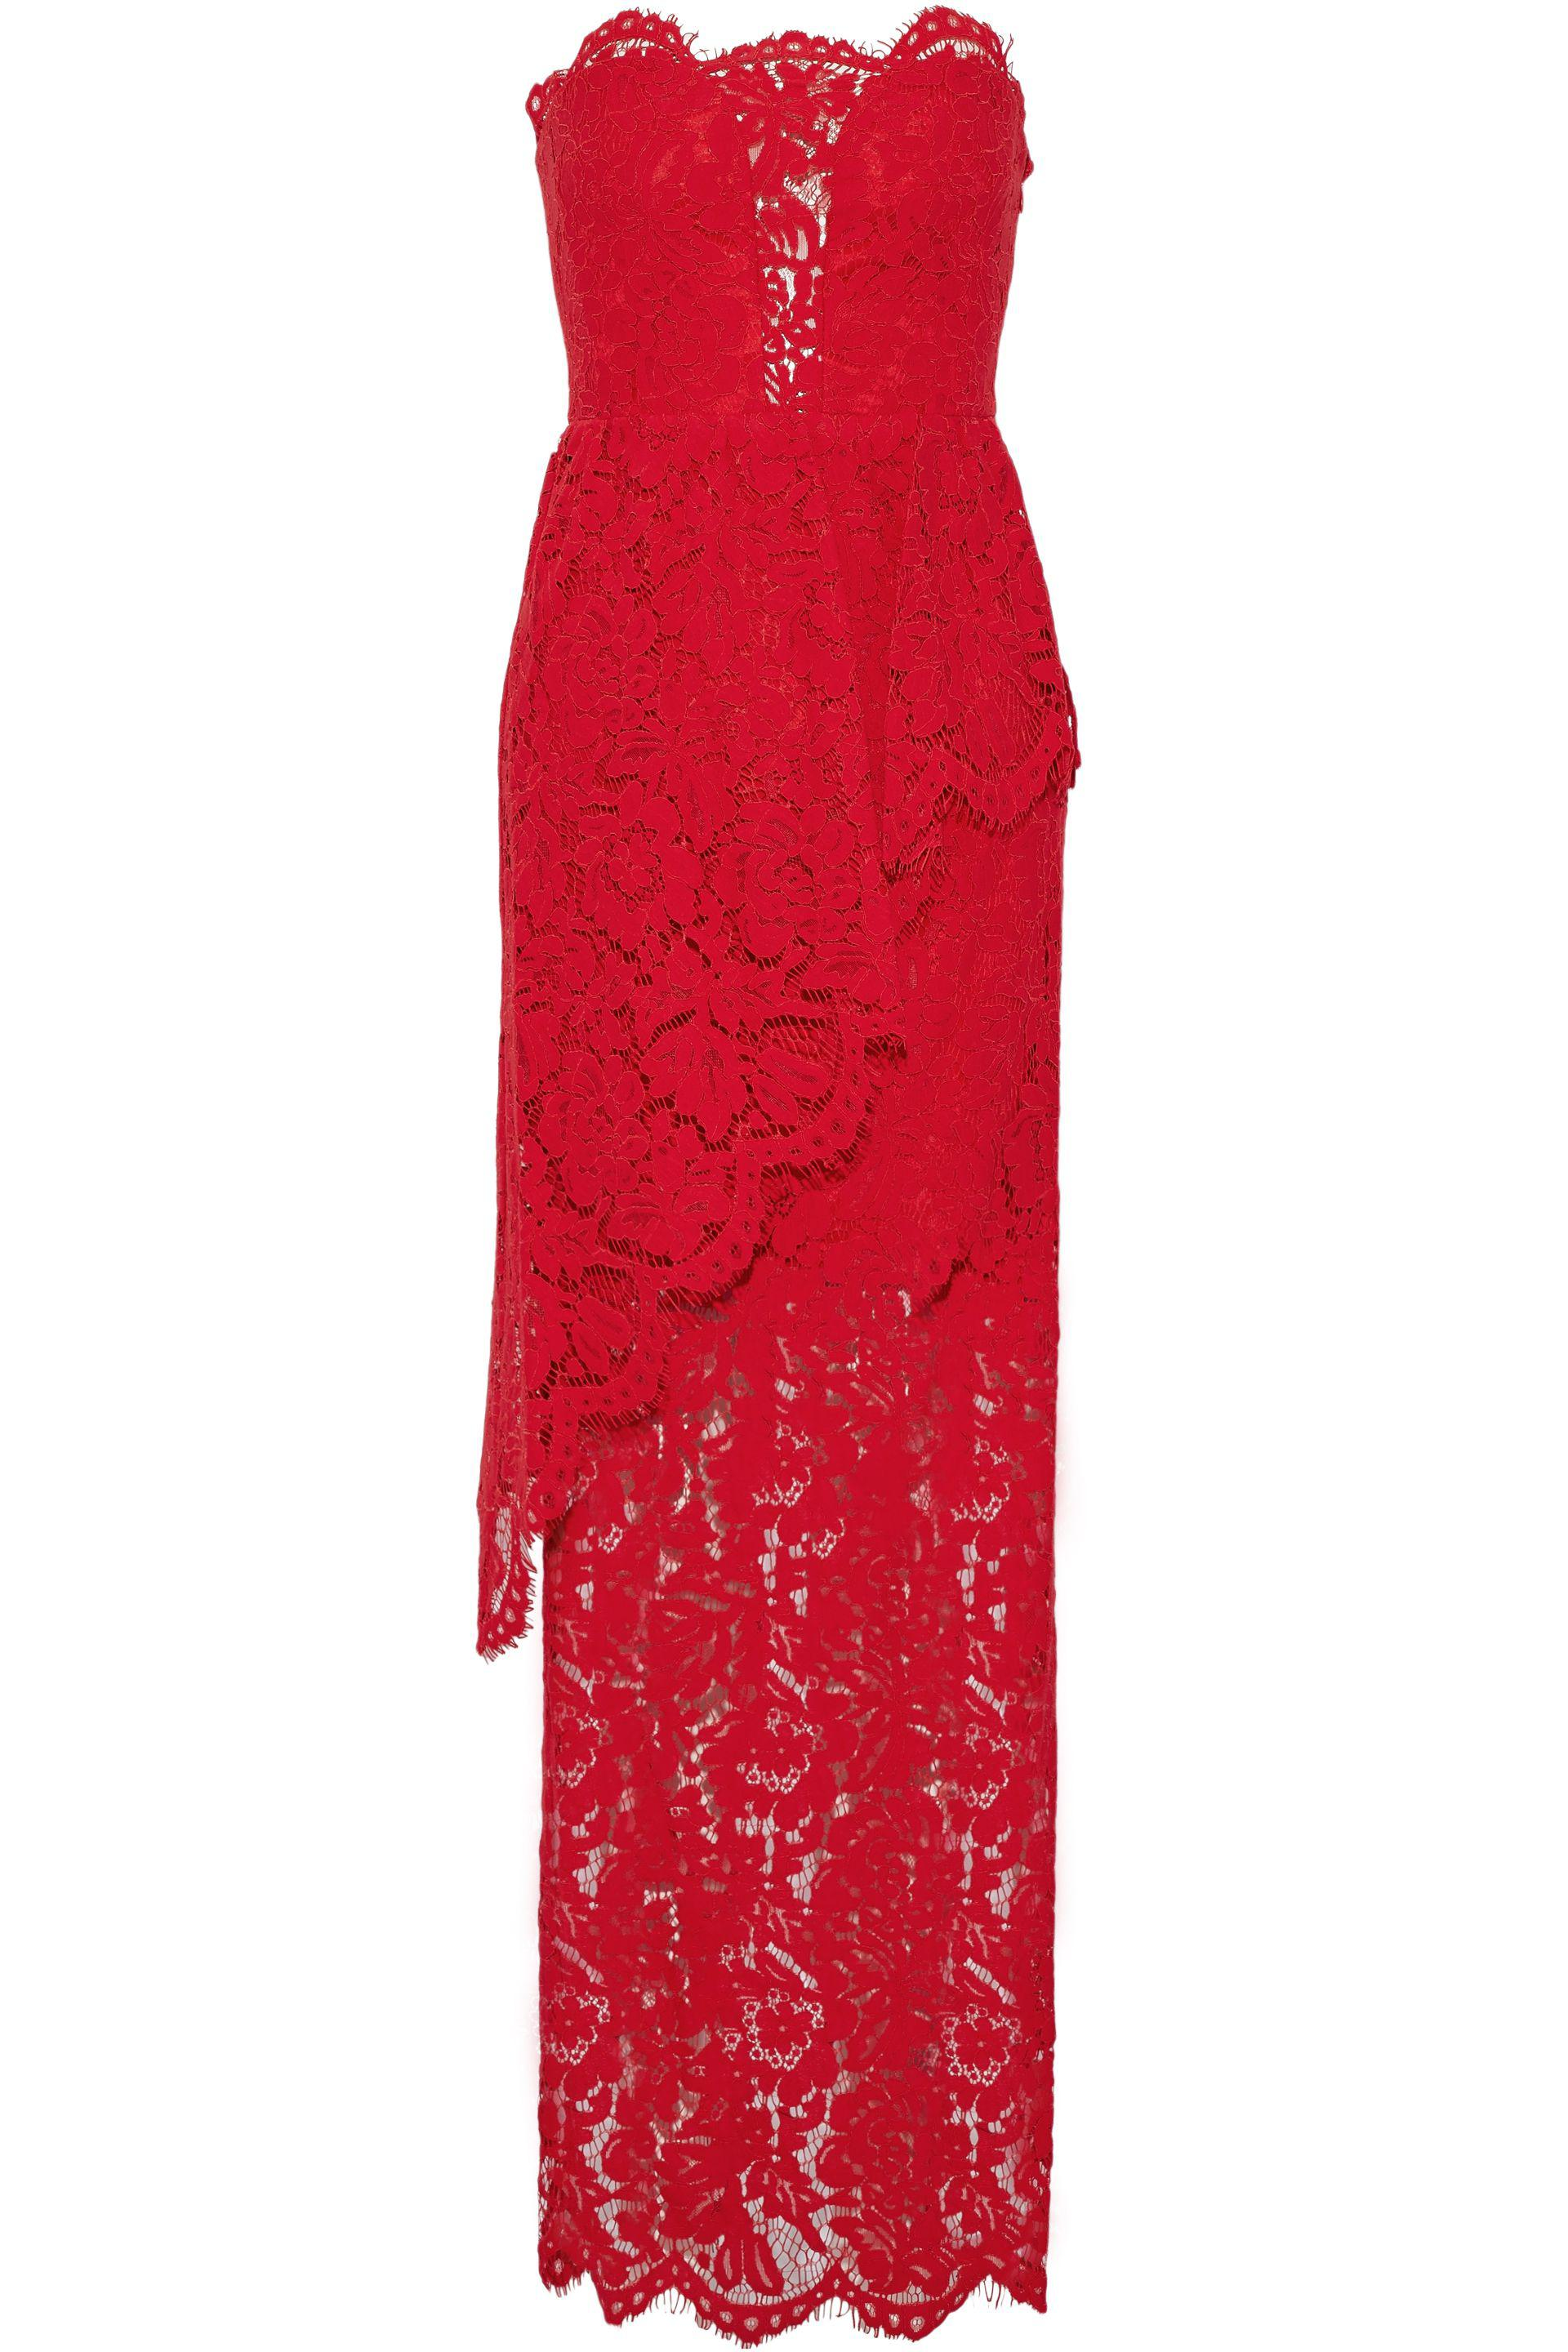 d6153c999fd MILLY Strapless Layered Corded Lace Gown in Red - Lyst